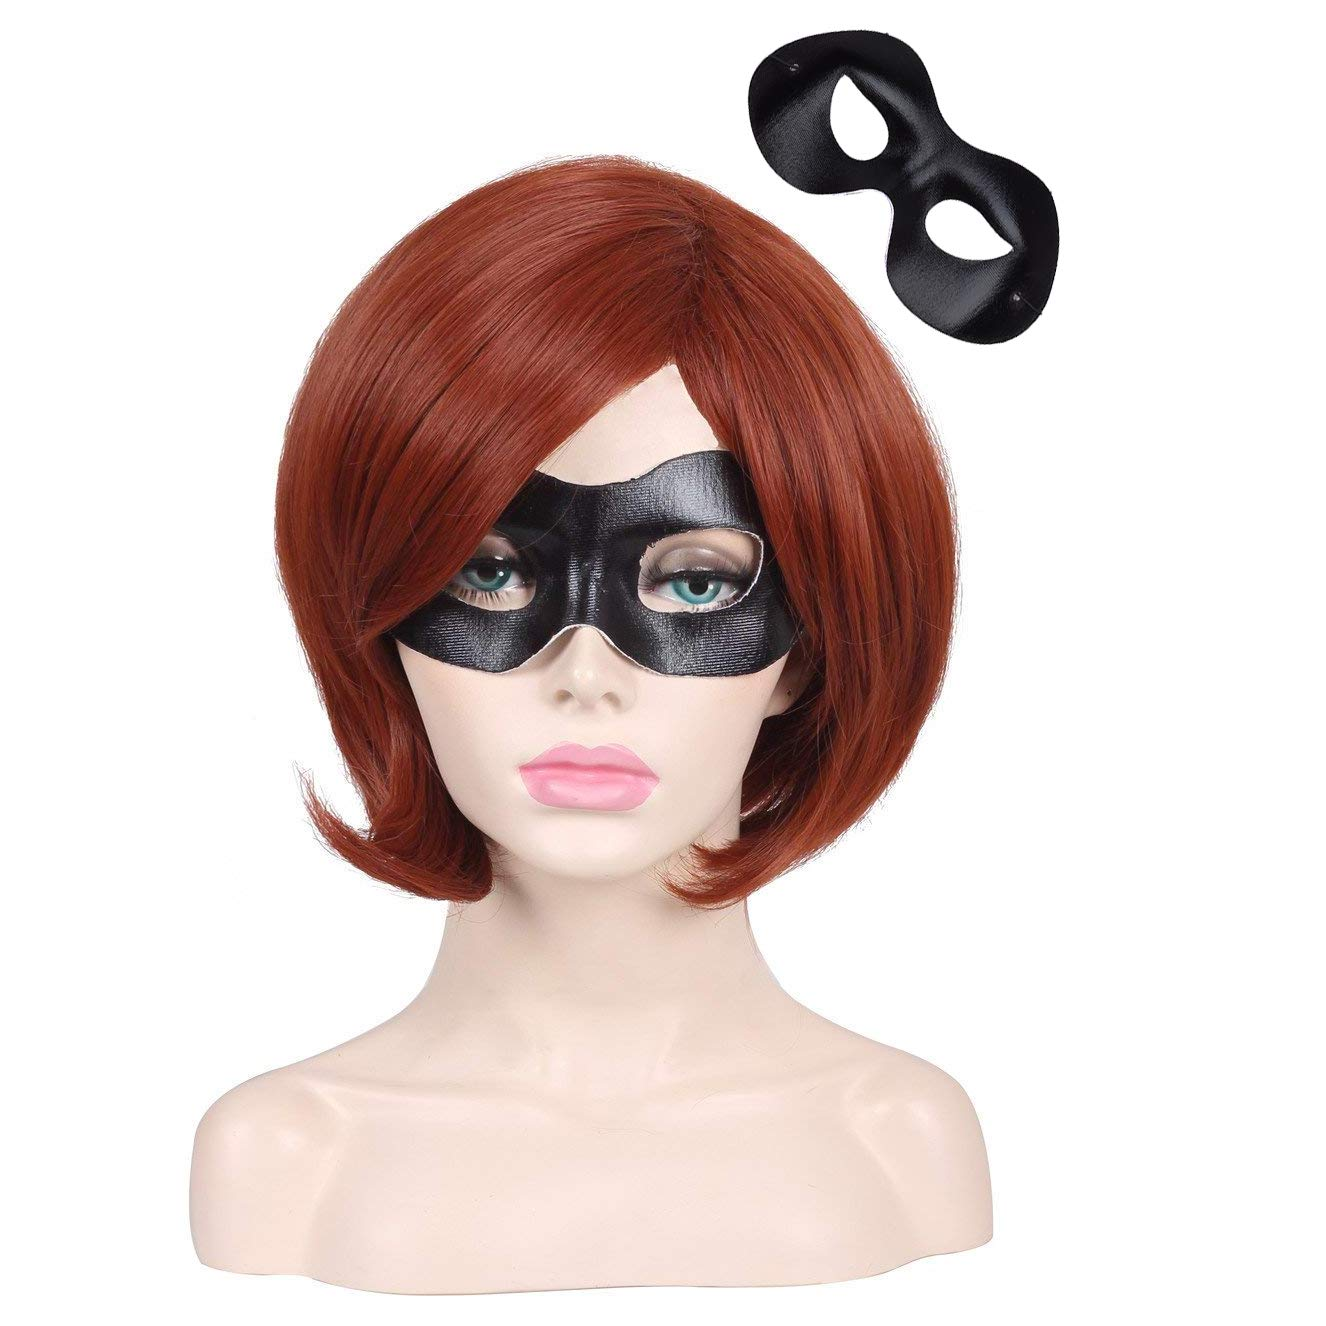 ColorGround Short Reddish Brown Prestyled Cosplay Wig and Eye Mask for Women by ColorGround